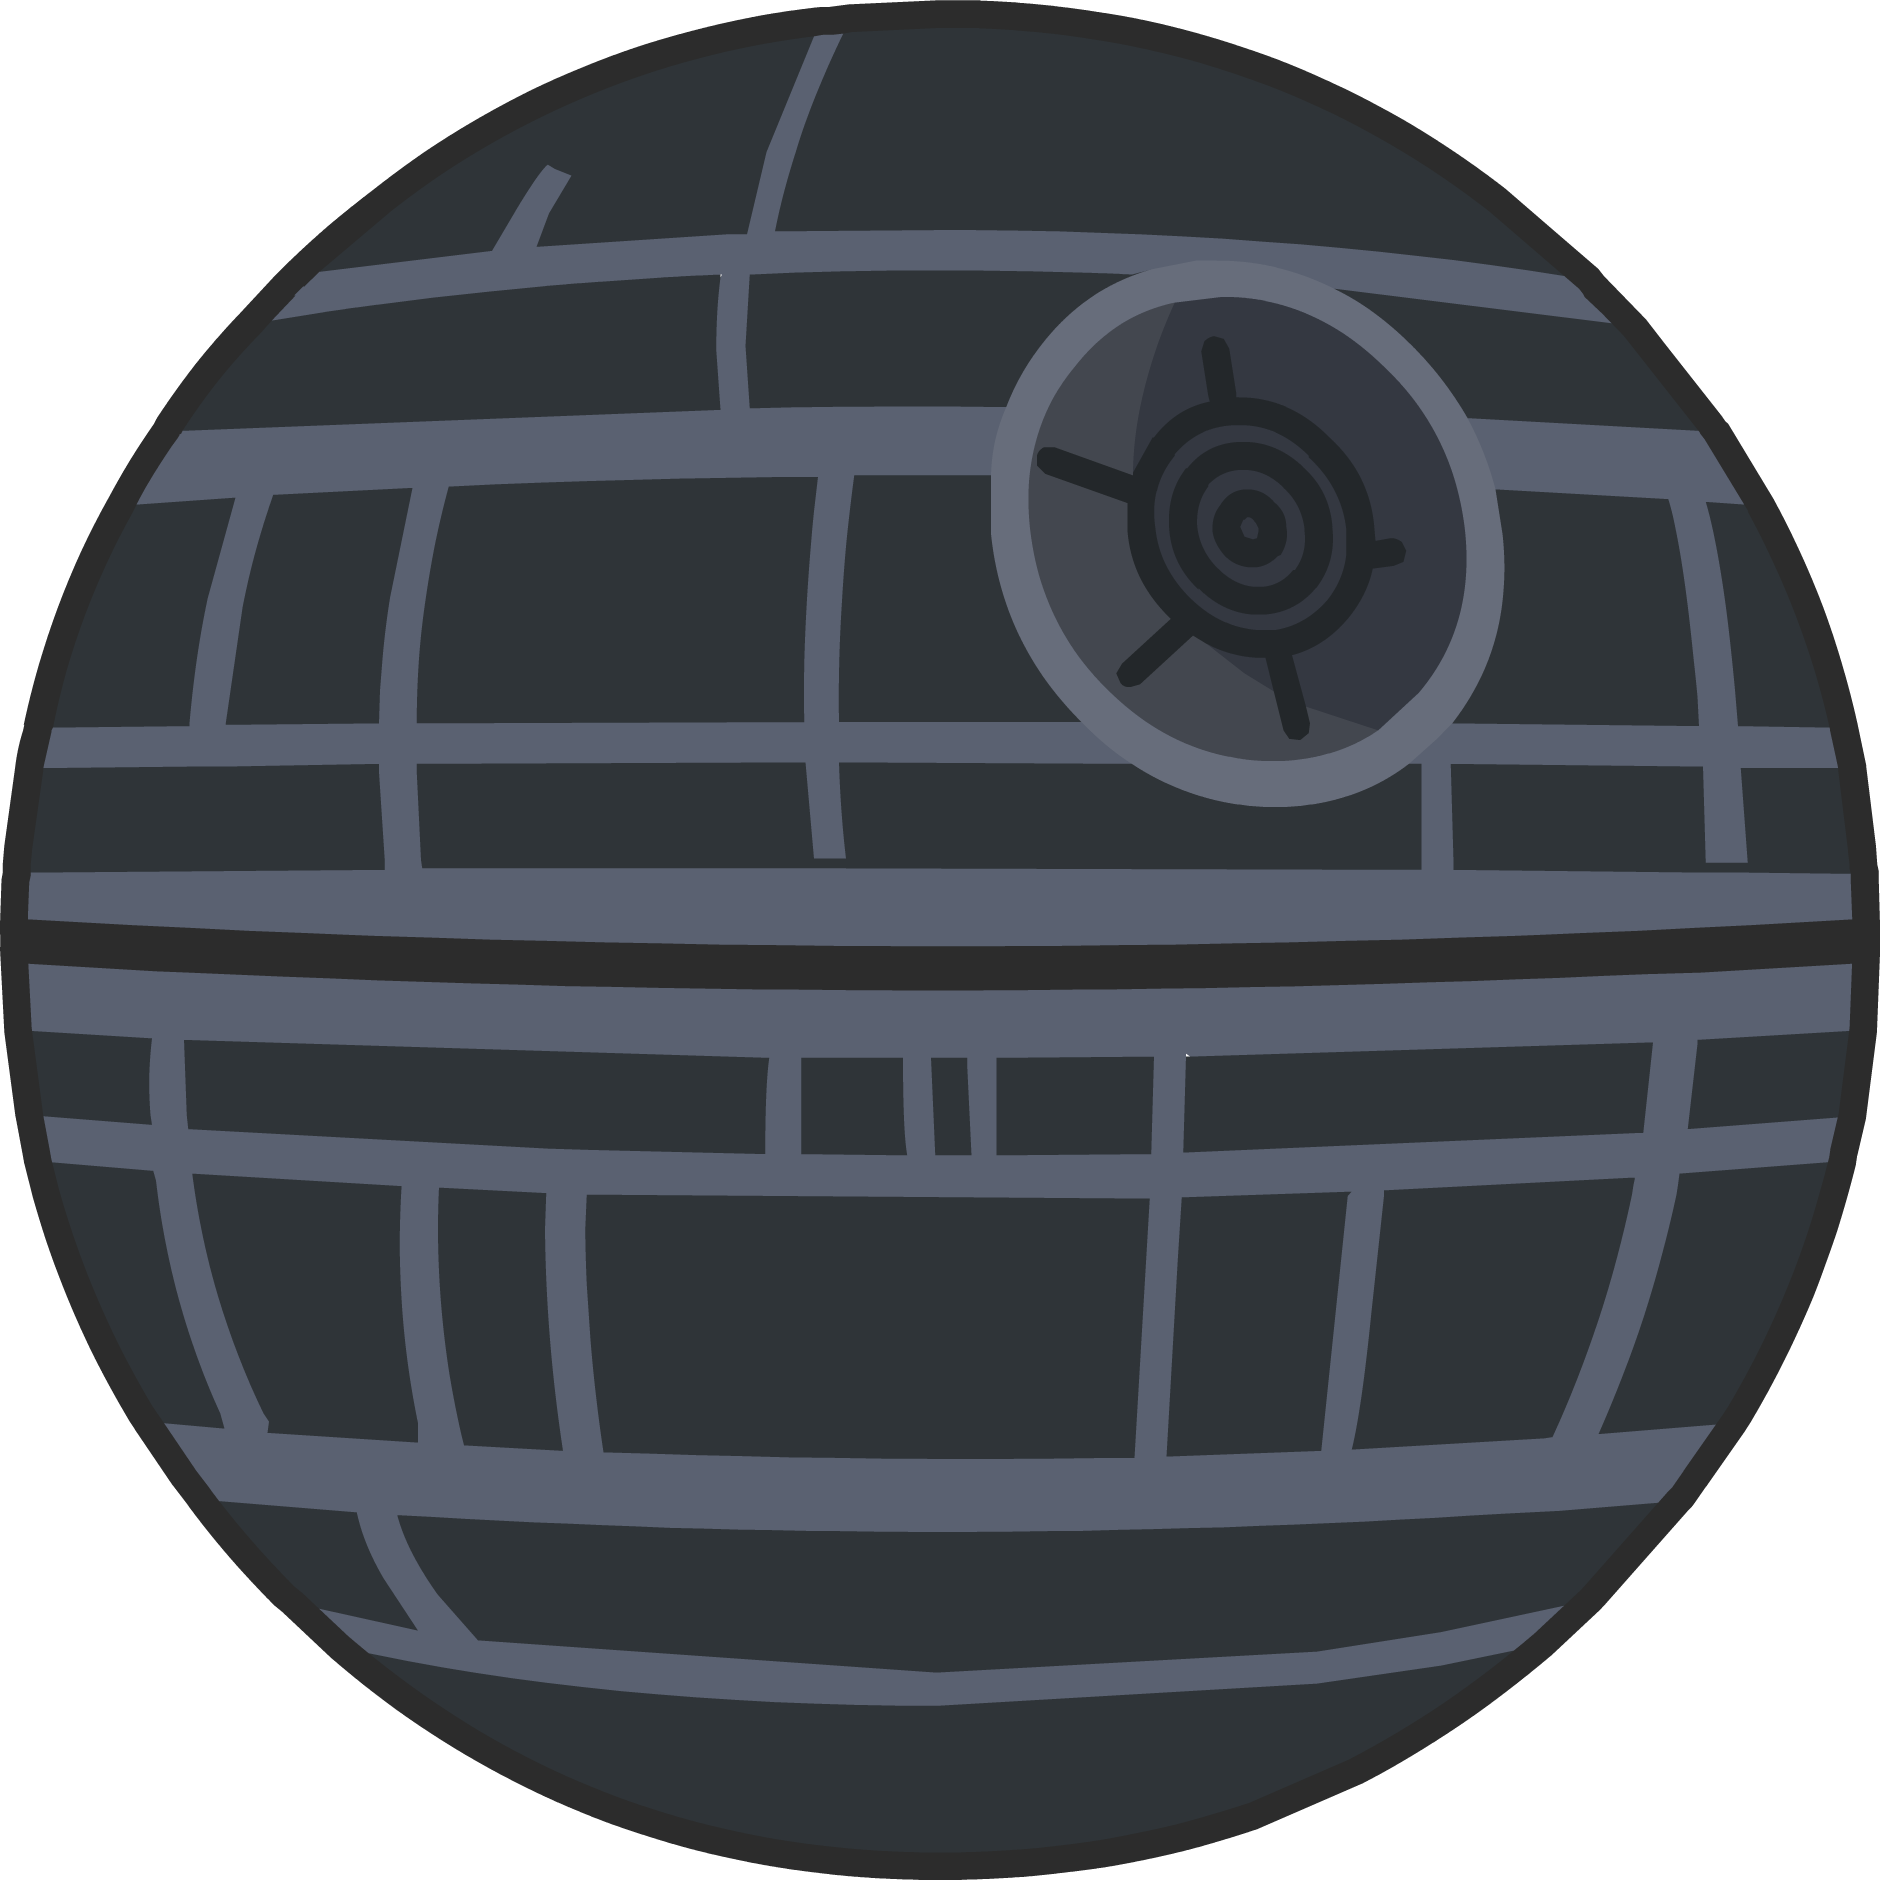 Planet clipart star. Death drawing at getdrawings